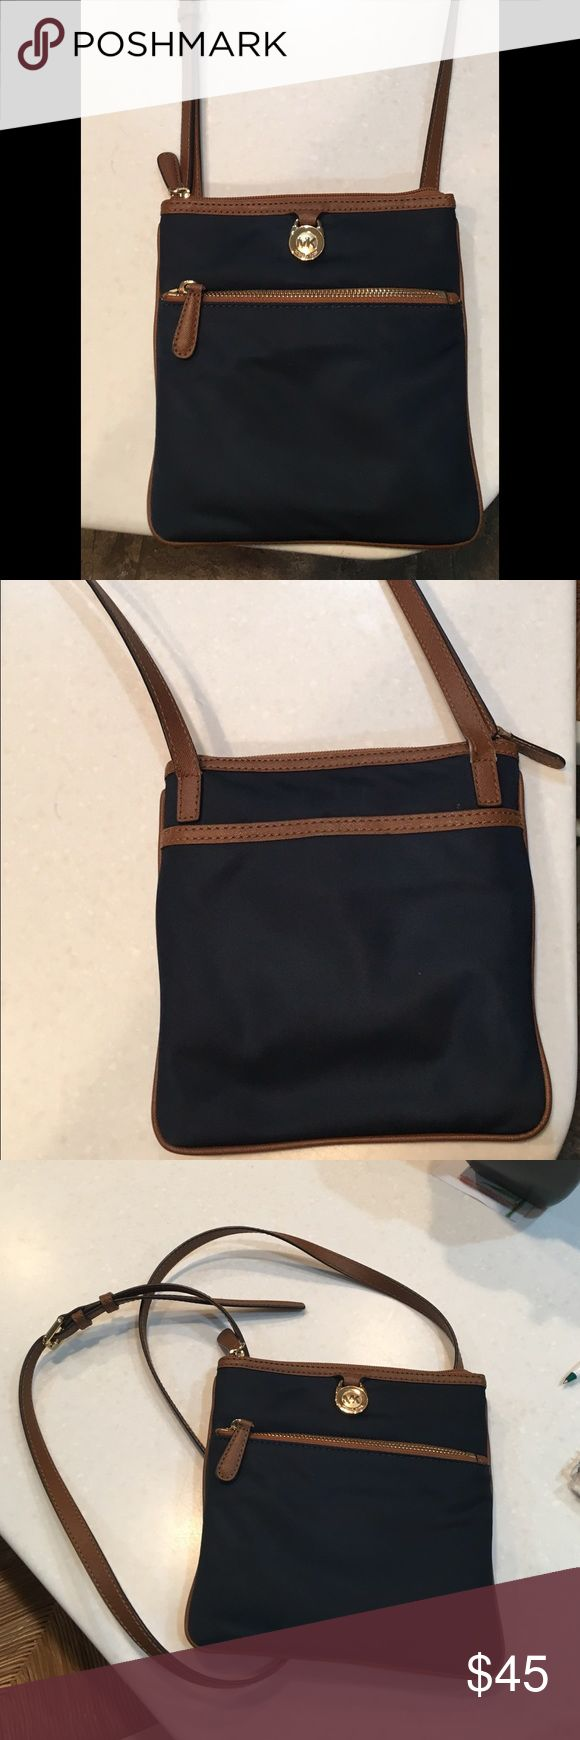 Michael Kors Kempton Large Crossbody Bag Navy with Gold& Brown Accents, Great Quality MICHAEL Michael Kors Bags Crossbody Bags